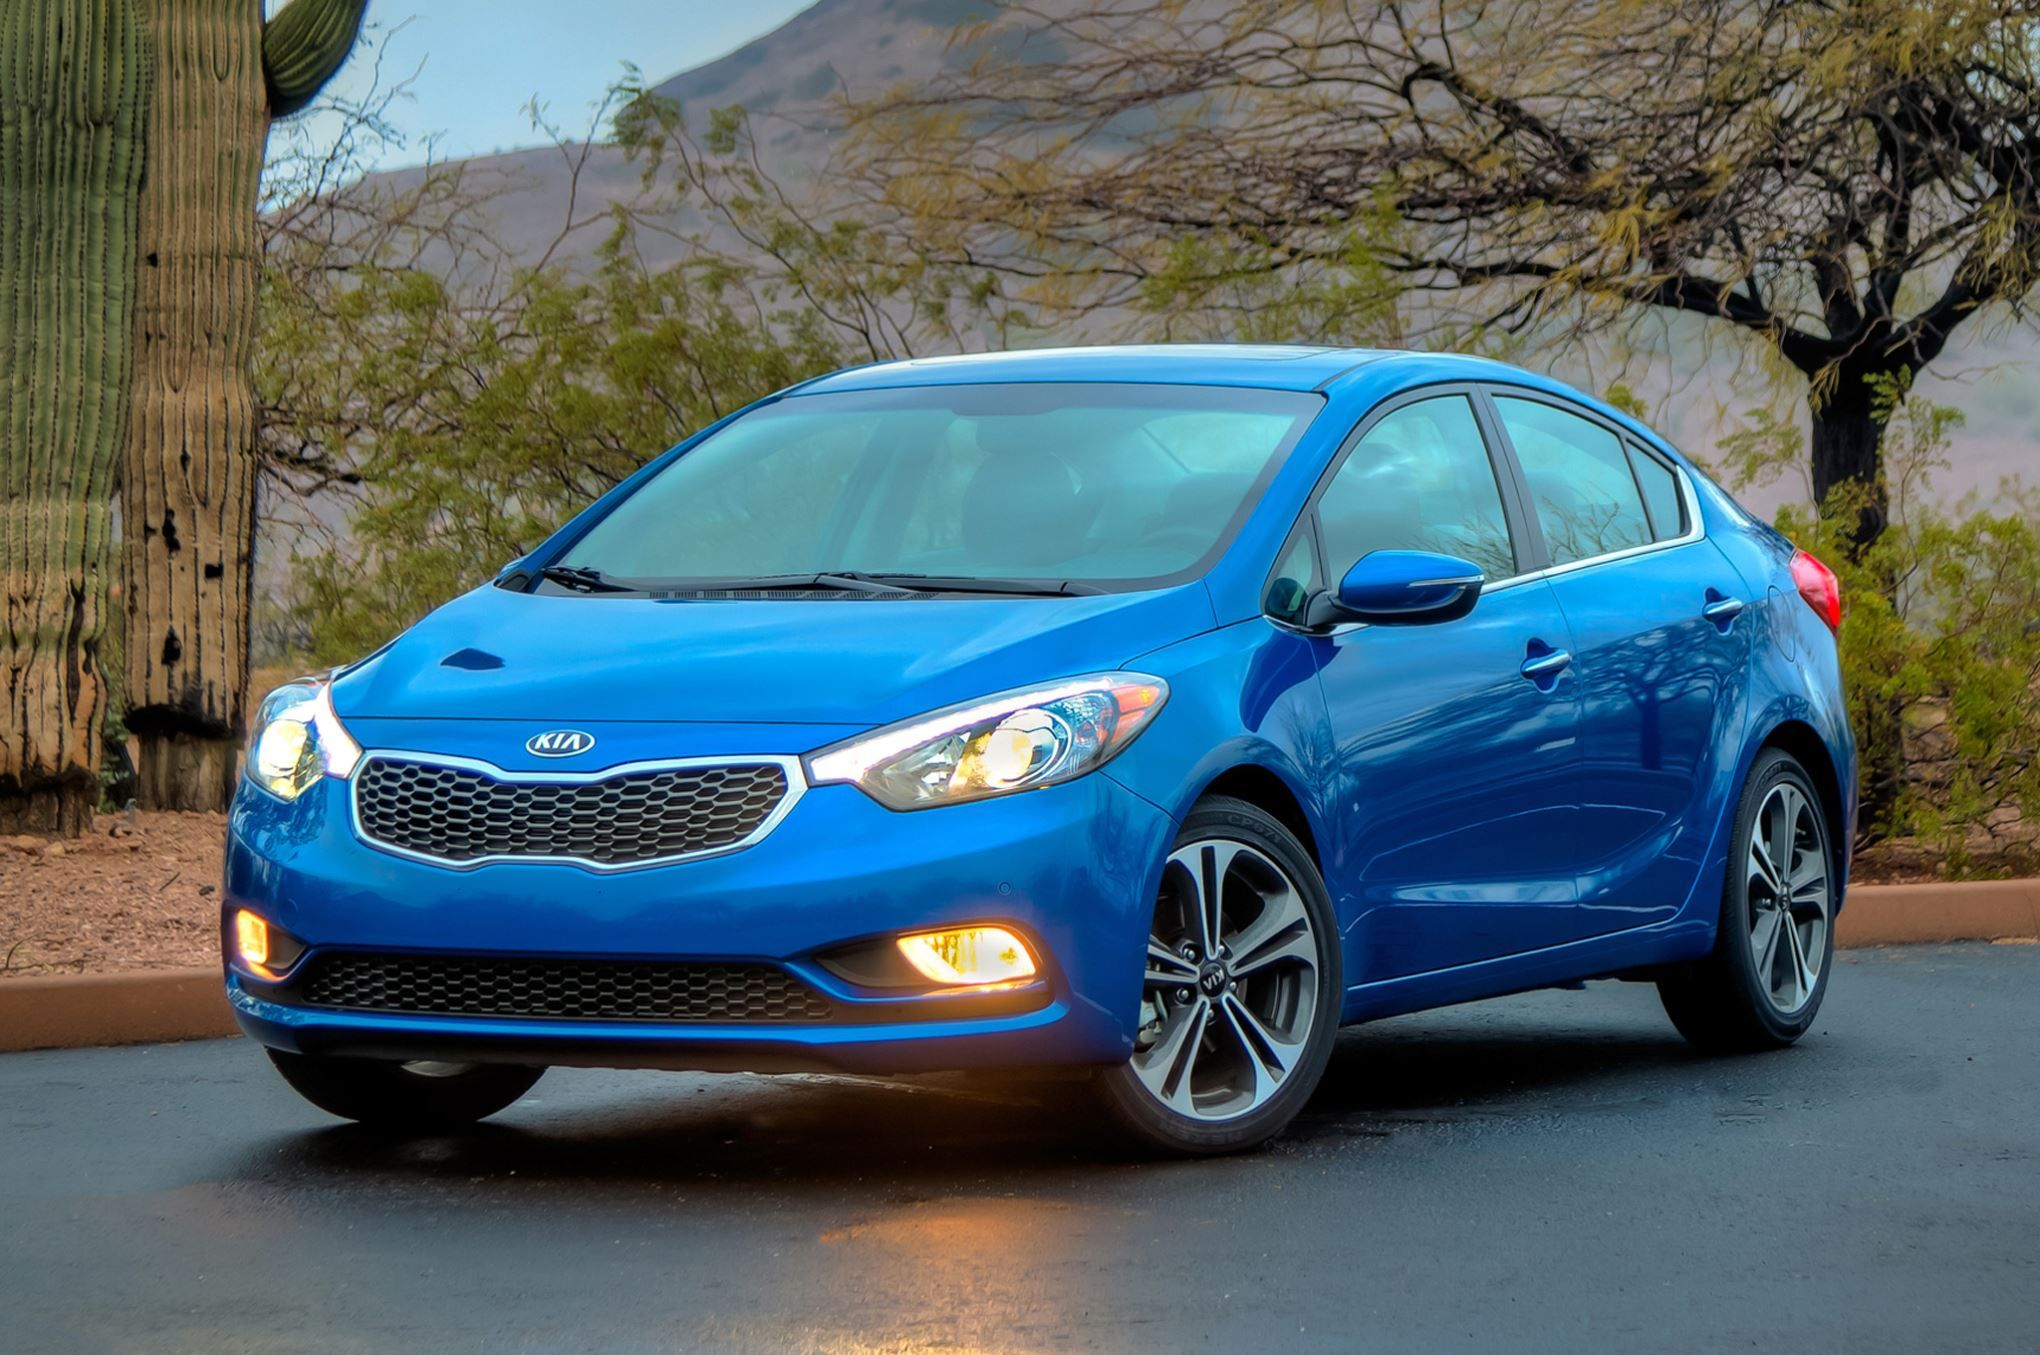 20152016 New Cars The Ultimate Buyer's Guide Kia forte